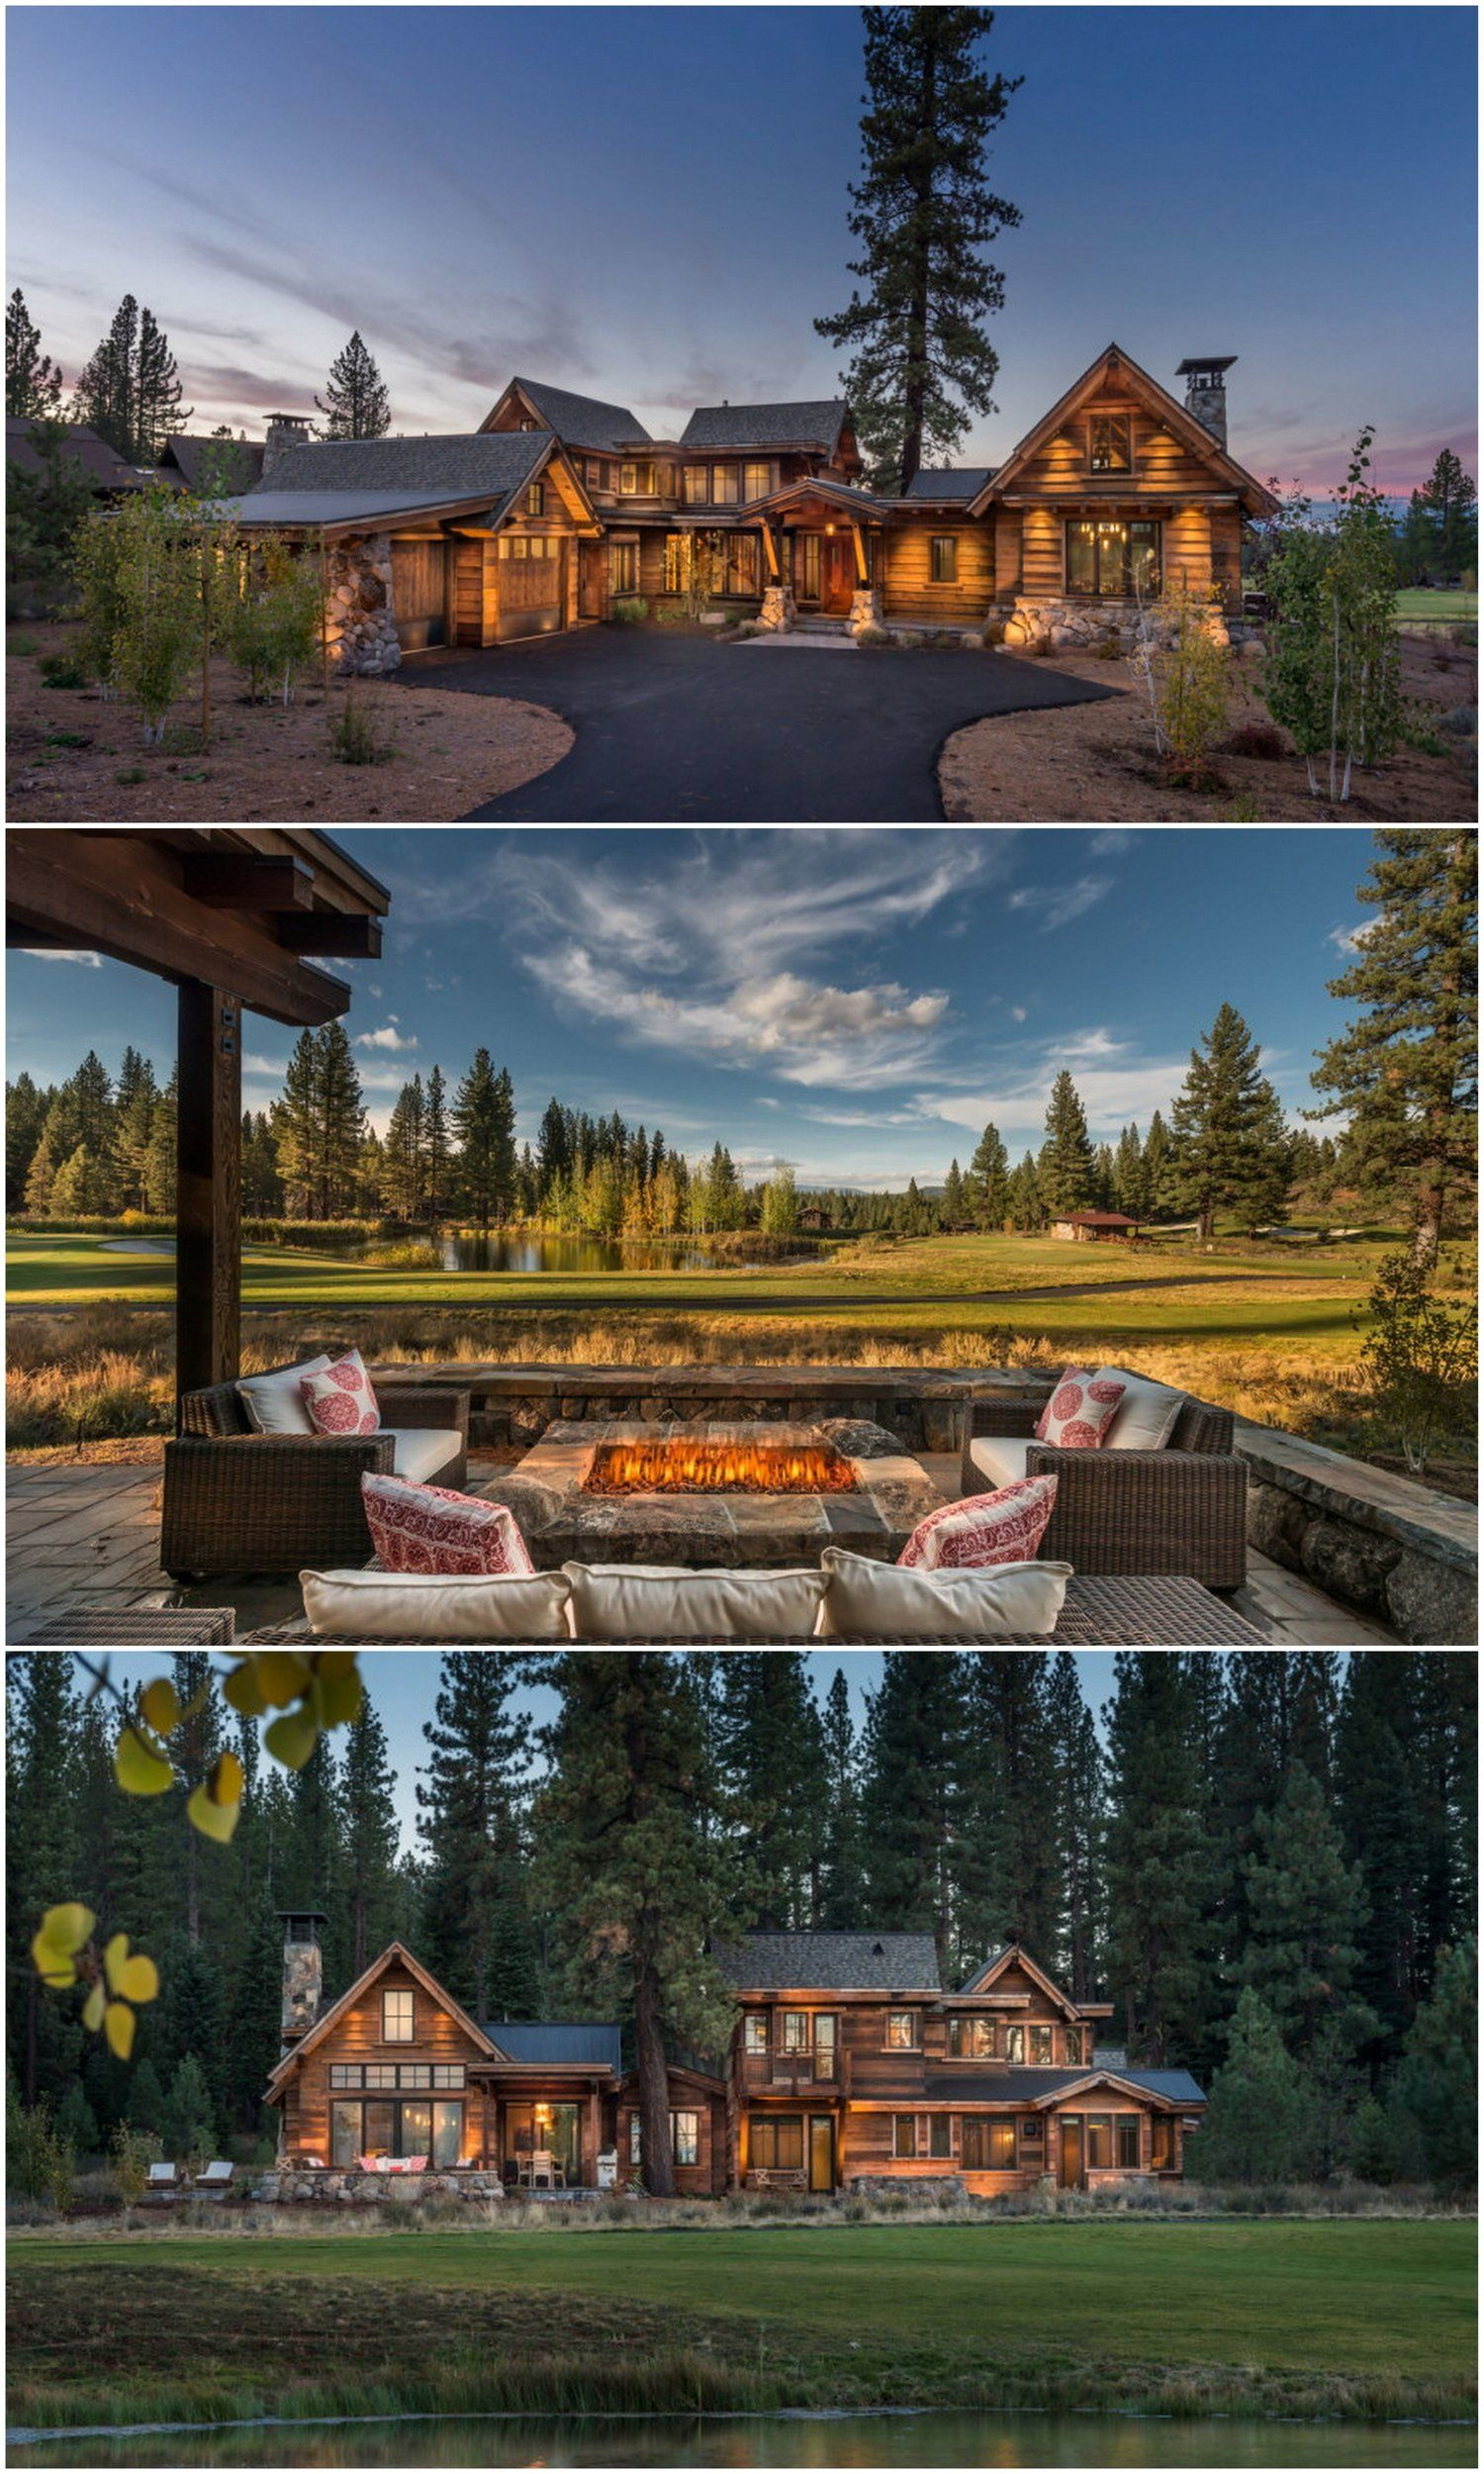 Architect S Dream Lake Tahoe Ca By Mark Tanner Construction Mountain House Plans Lake Tahoe House Plans